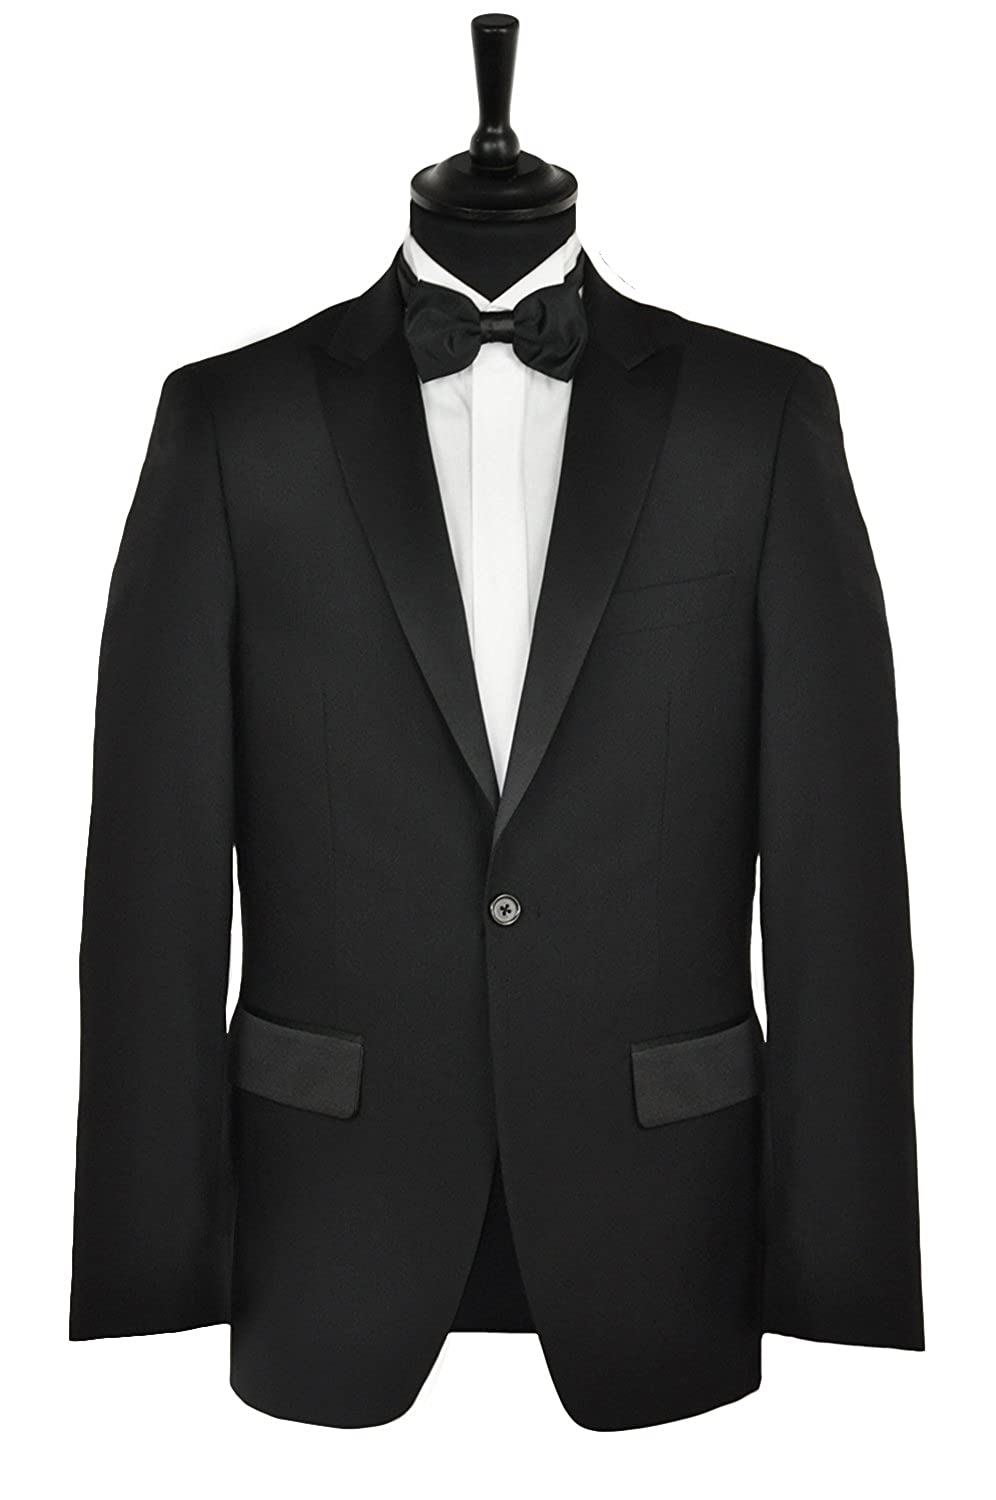 Mens Premium Black Tuxedo Dinner Suit Regular Length